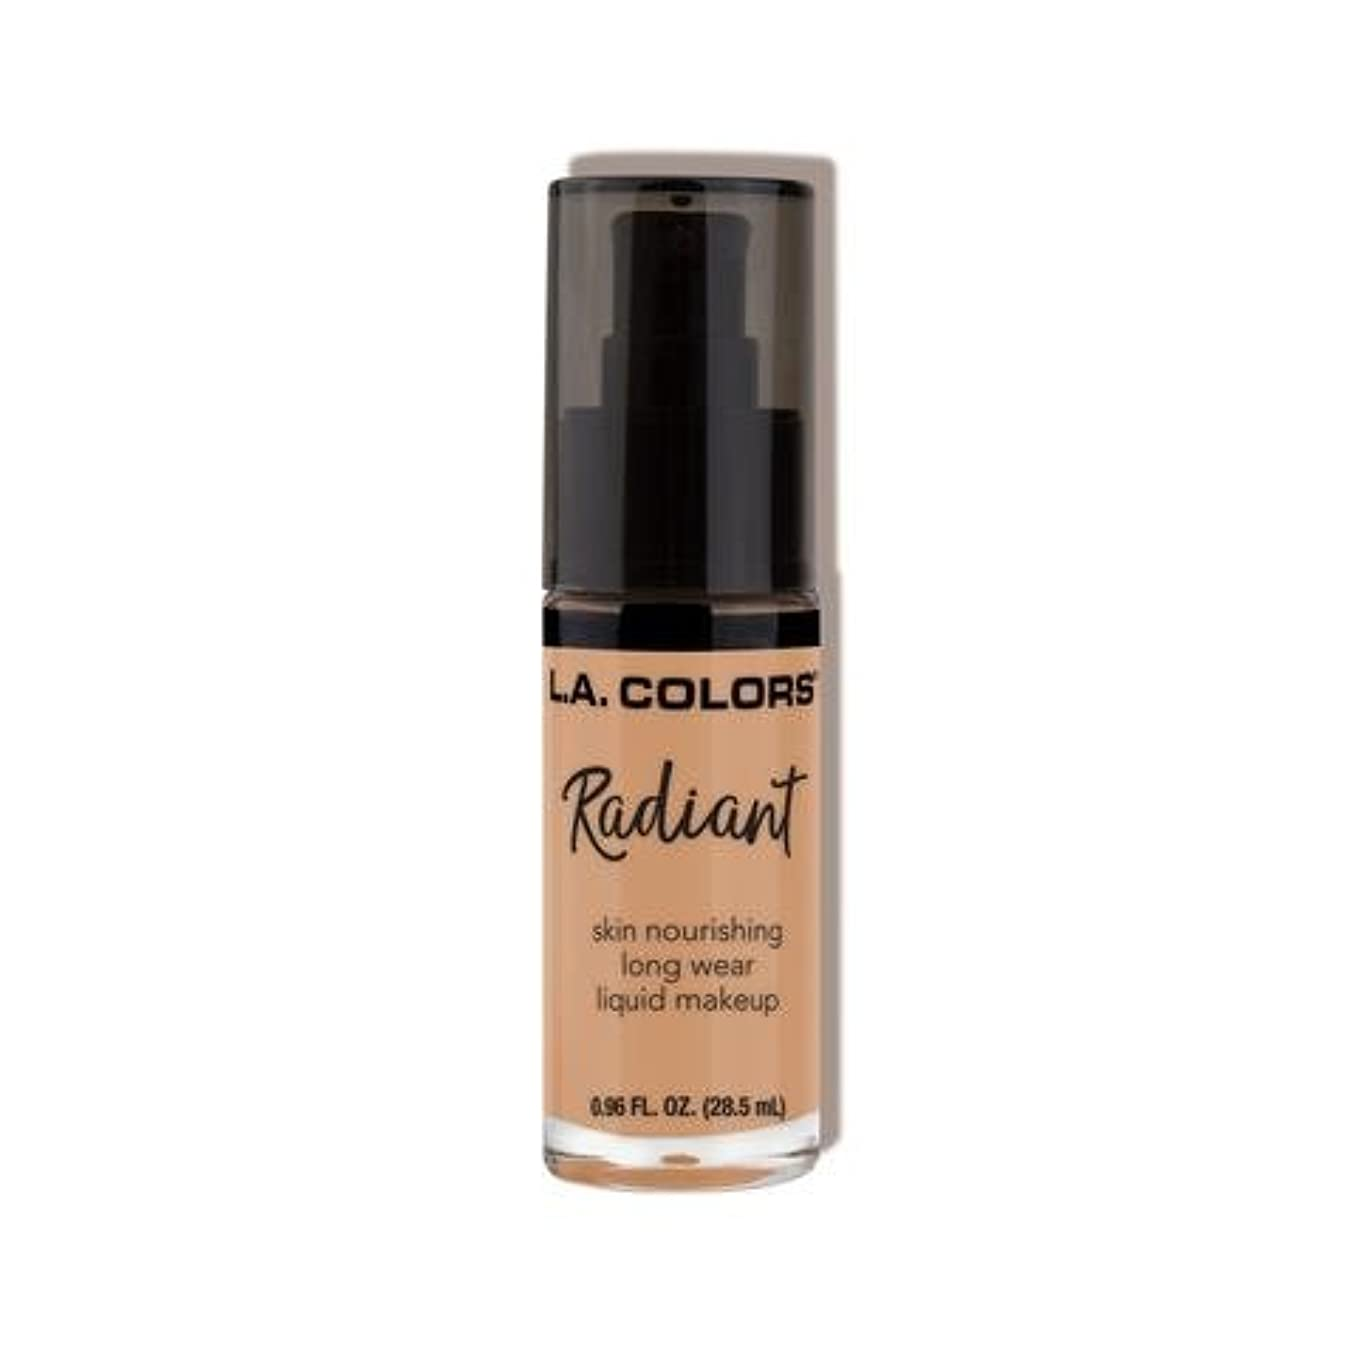 面倒折り目辛い(6 Pack) L.A. COLORS Radiant Liquid Makeup - Light Tan (並行輸入品)